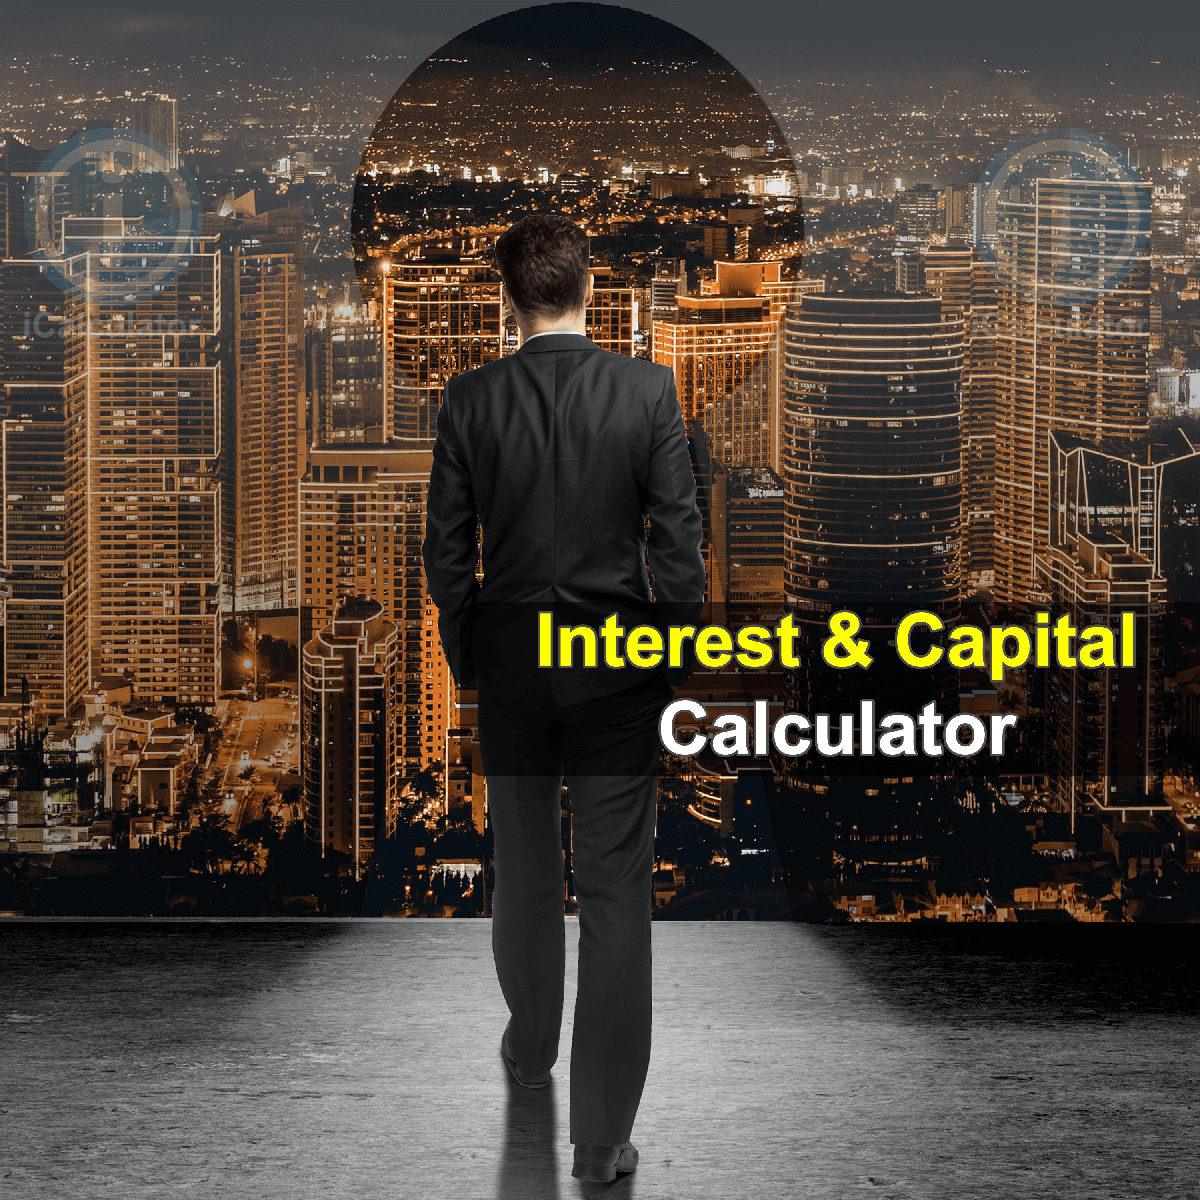 Interest plus Principal Calculator. This image provides details of how to calculate the Interest plus Principal using a calculator and notepad. By using the Interest plus Principal formula, the Interest plus Principal Calculator provides a true calculation of the benefits that a financial institution or an investor receives, such as fee, which is paid for the processing or a loan or a third party commission, dividends or profits earned on shareholdings as they are considered the reward for risk taking.